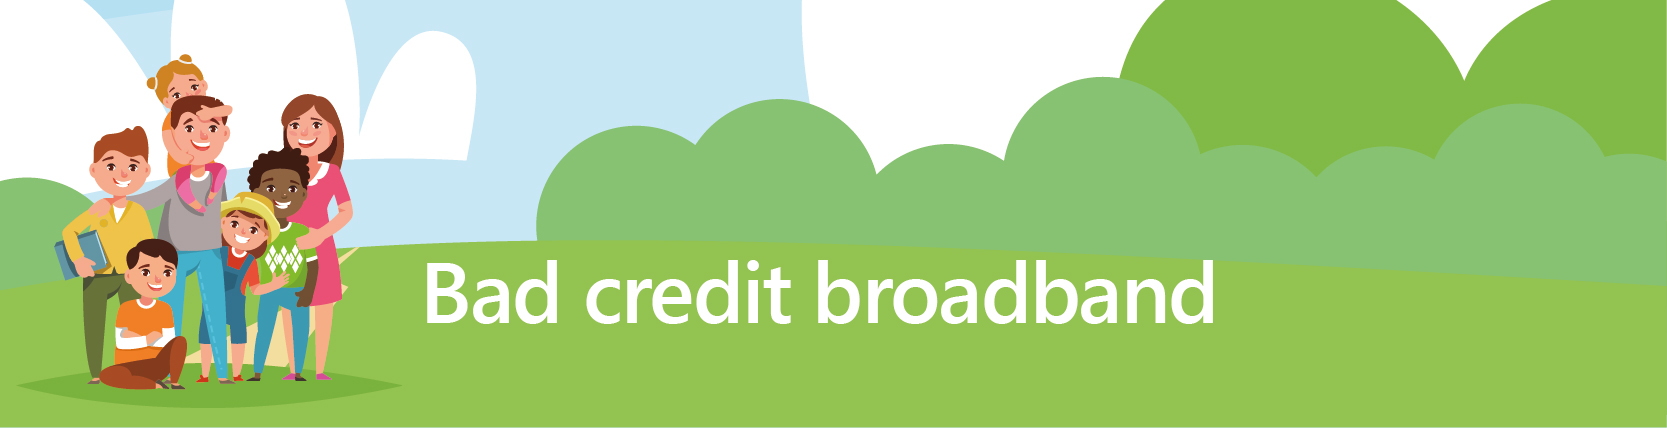 bad credit broadband